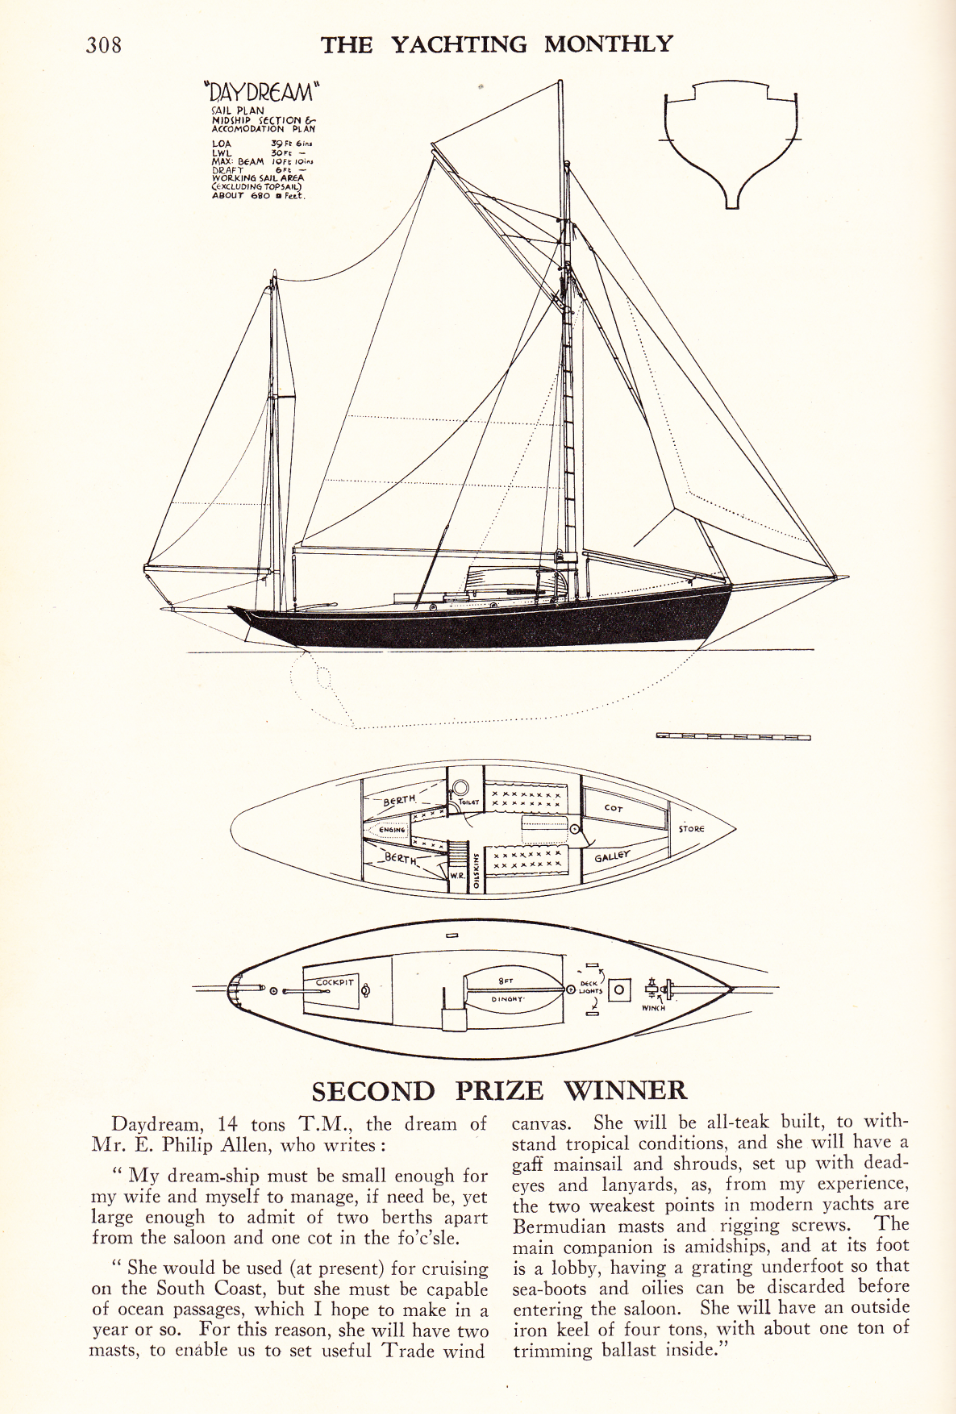 Click to open. E. P. Allen's entry 'Daydream' for the 1936 Yachting Monthly design compeition, which fetched second place. This was Philip Allen's intial dream ship, although later Maxwell Blake and Allen developed Daydream's successor, 'Mirelle', built at Whisttock's Boatyard, Woodbridge.